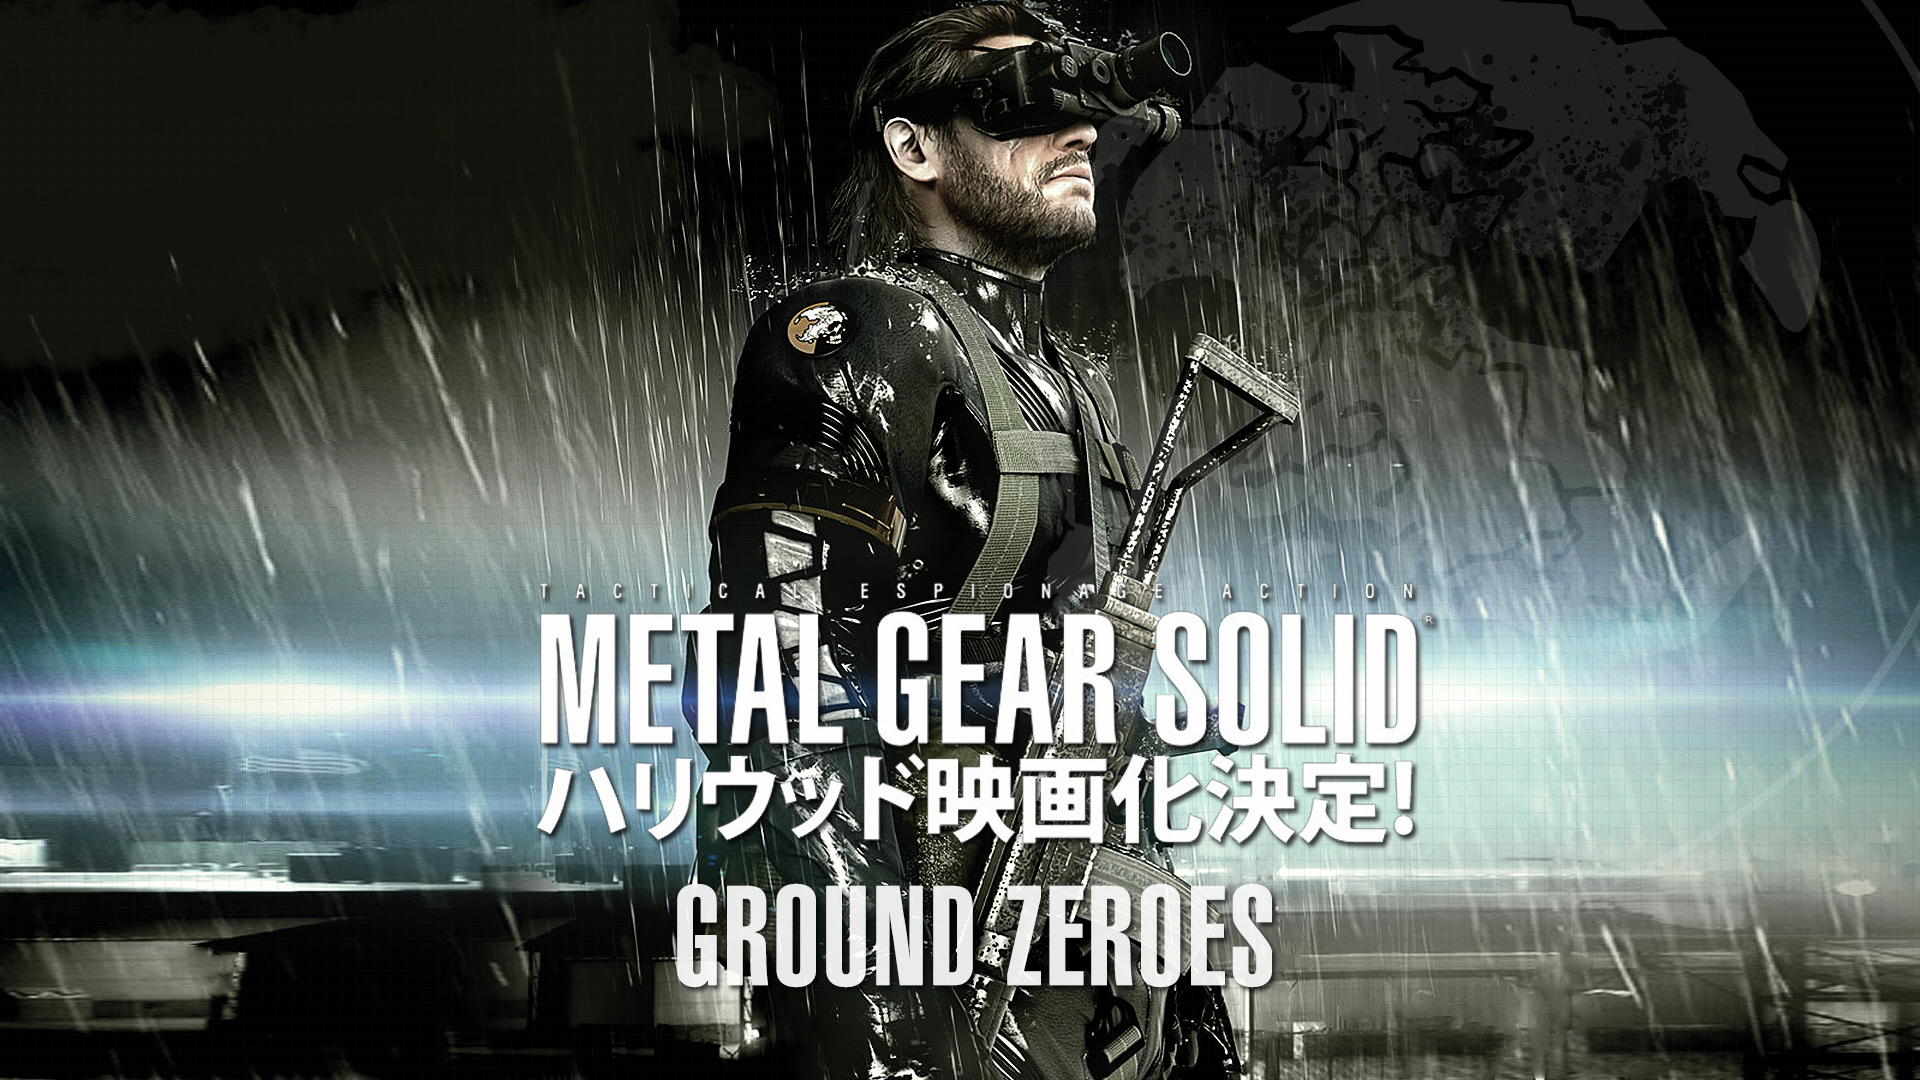 metal_gear_solid_ground_zeroes_wallpaper_by_jayveerk-d5e2xgf